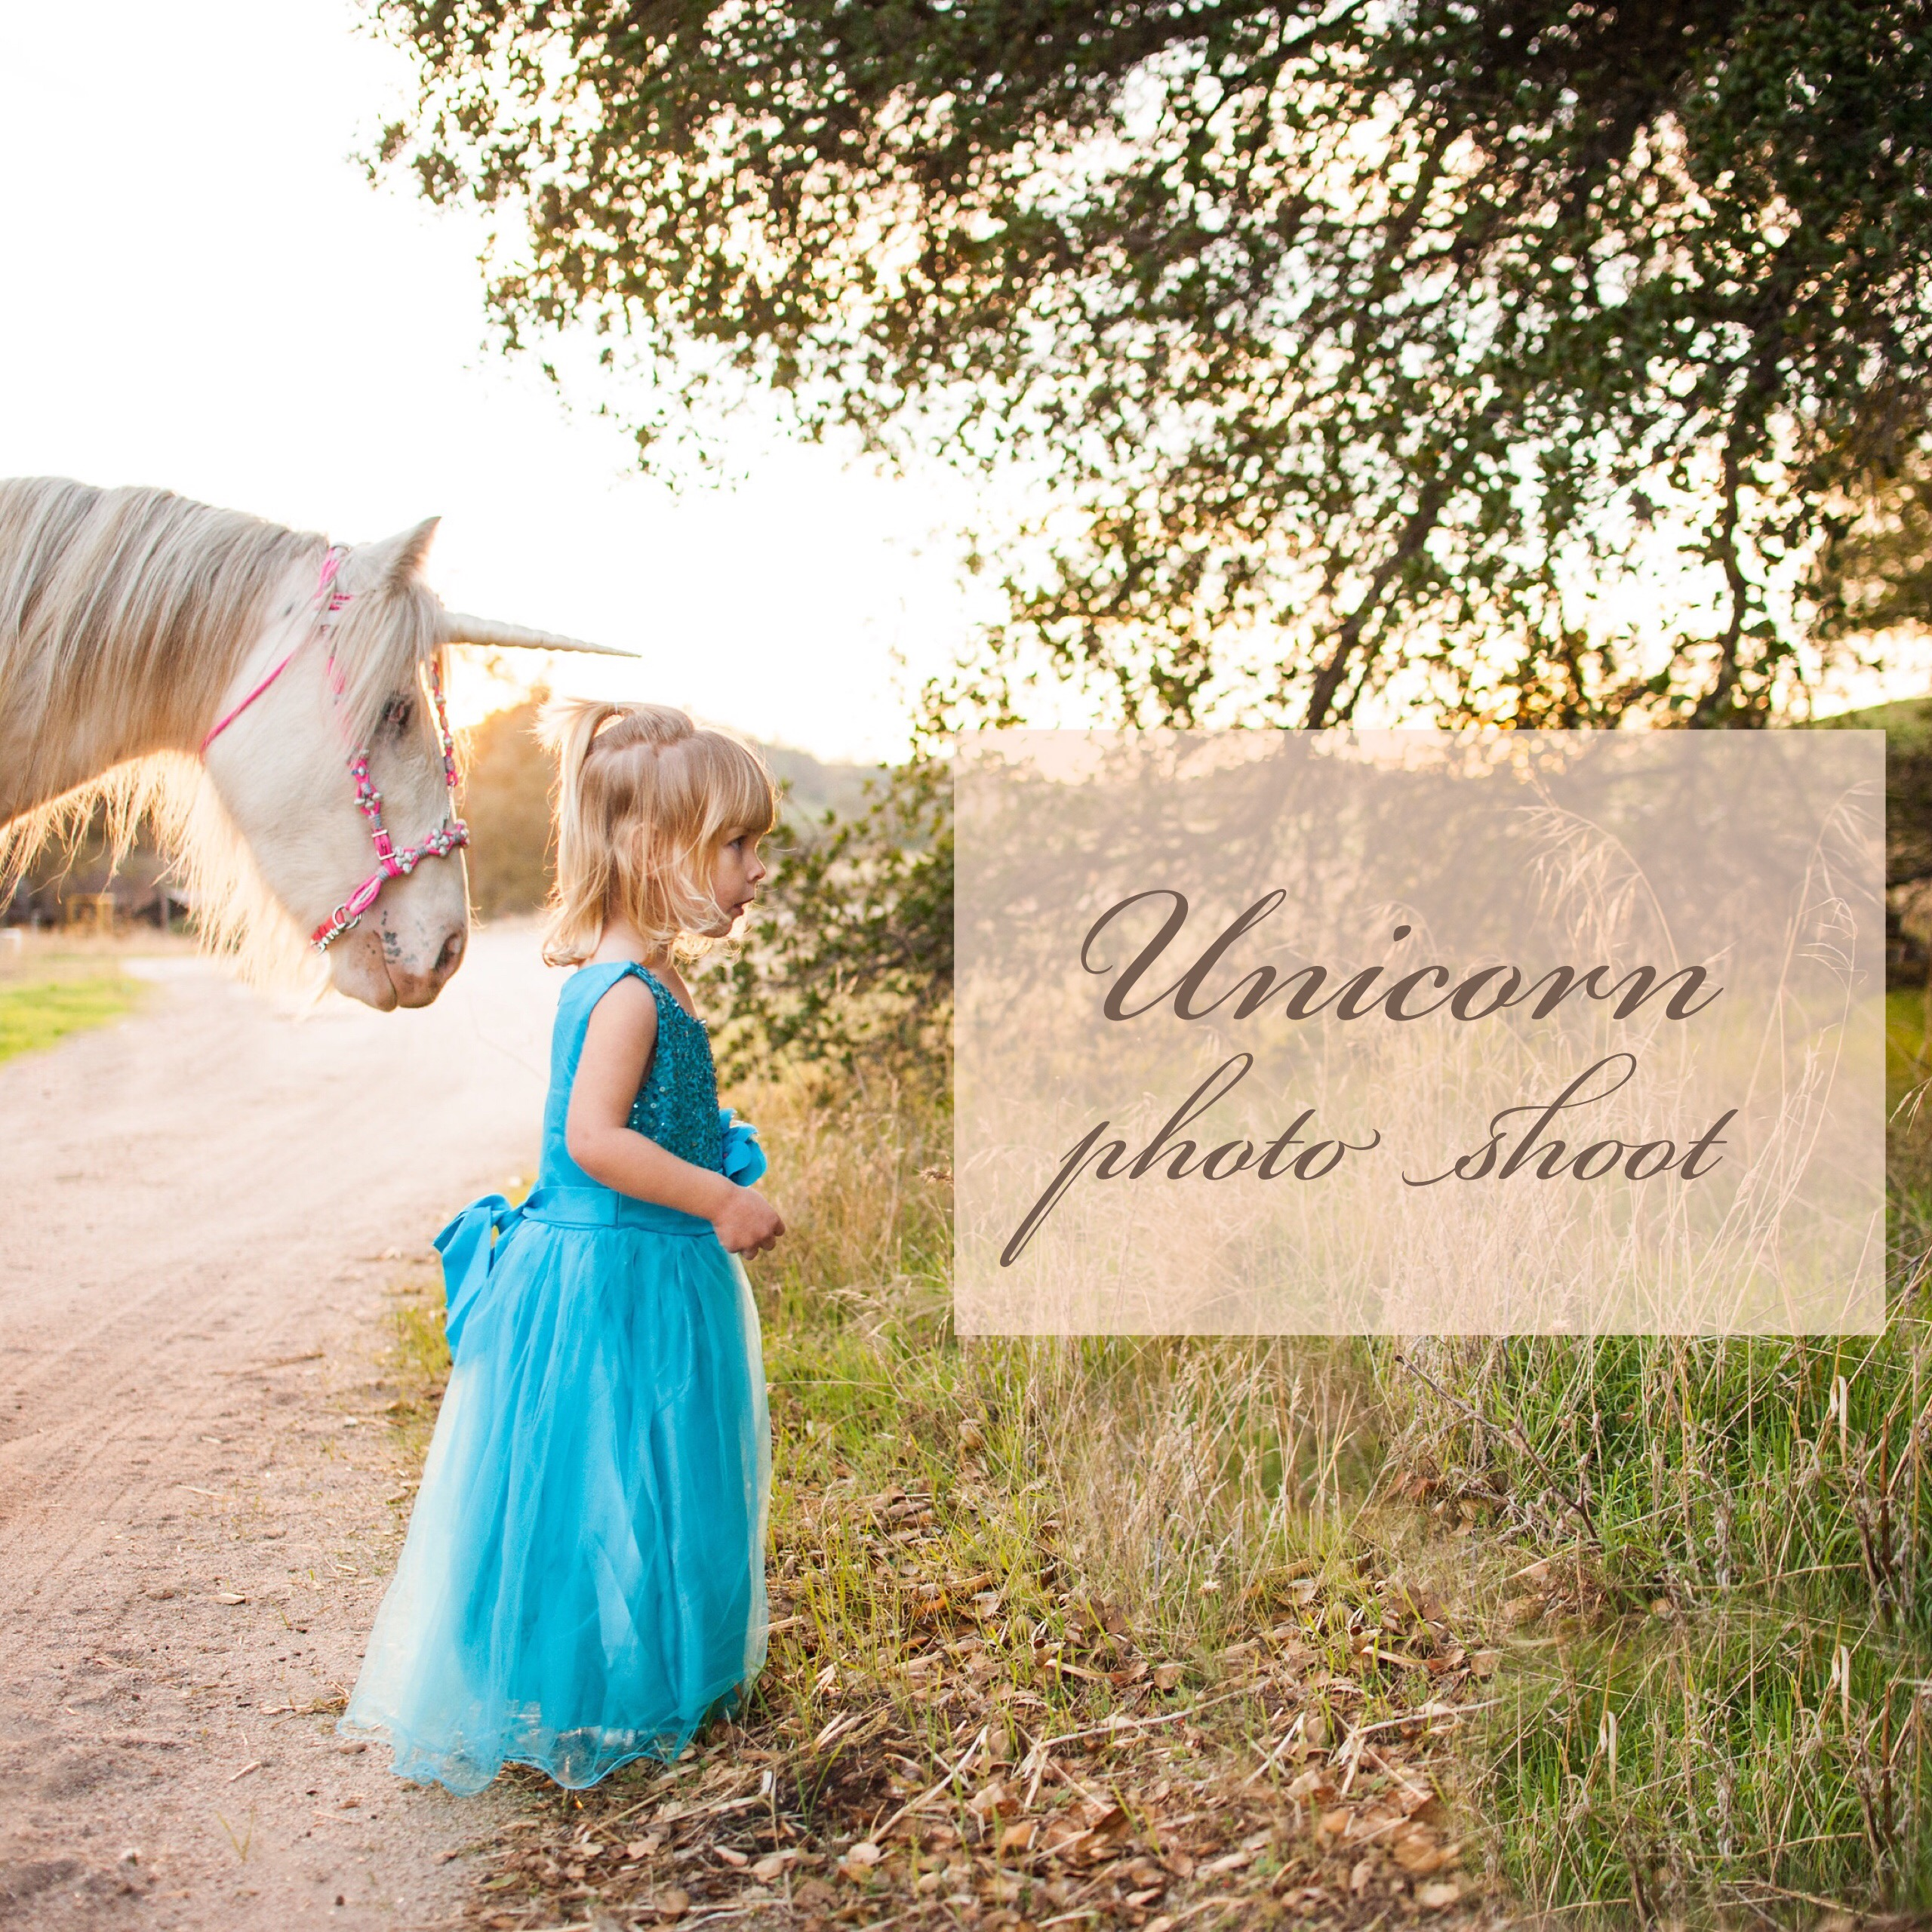 Toddler dressed as a fairy princess poses with a unicorn in a magical photoshoot in Creston, California.